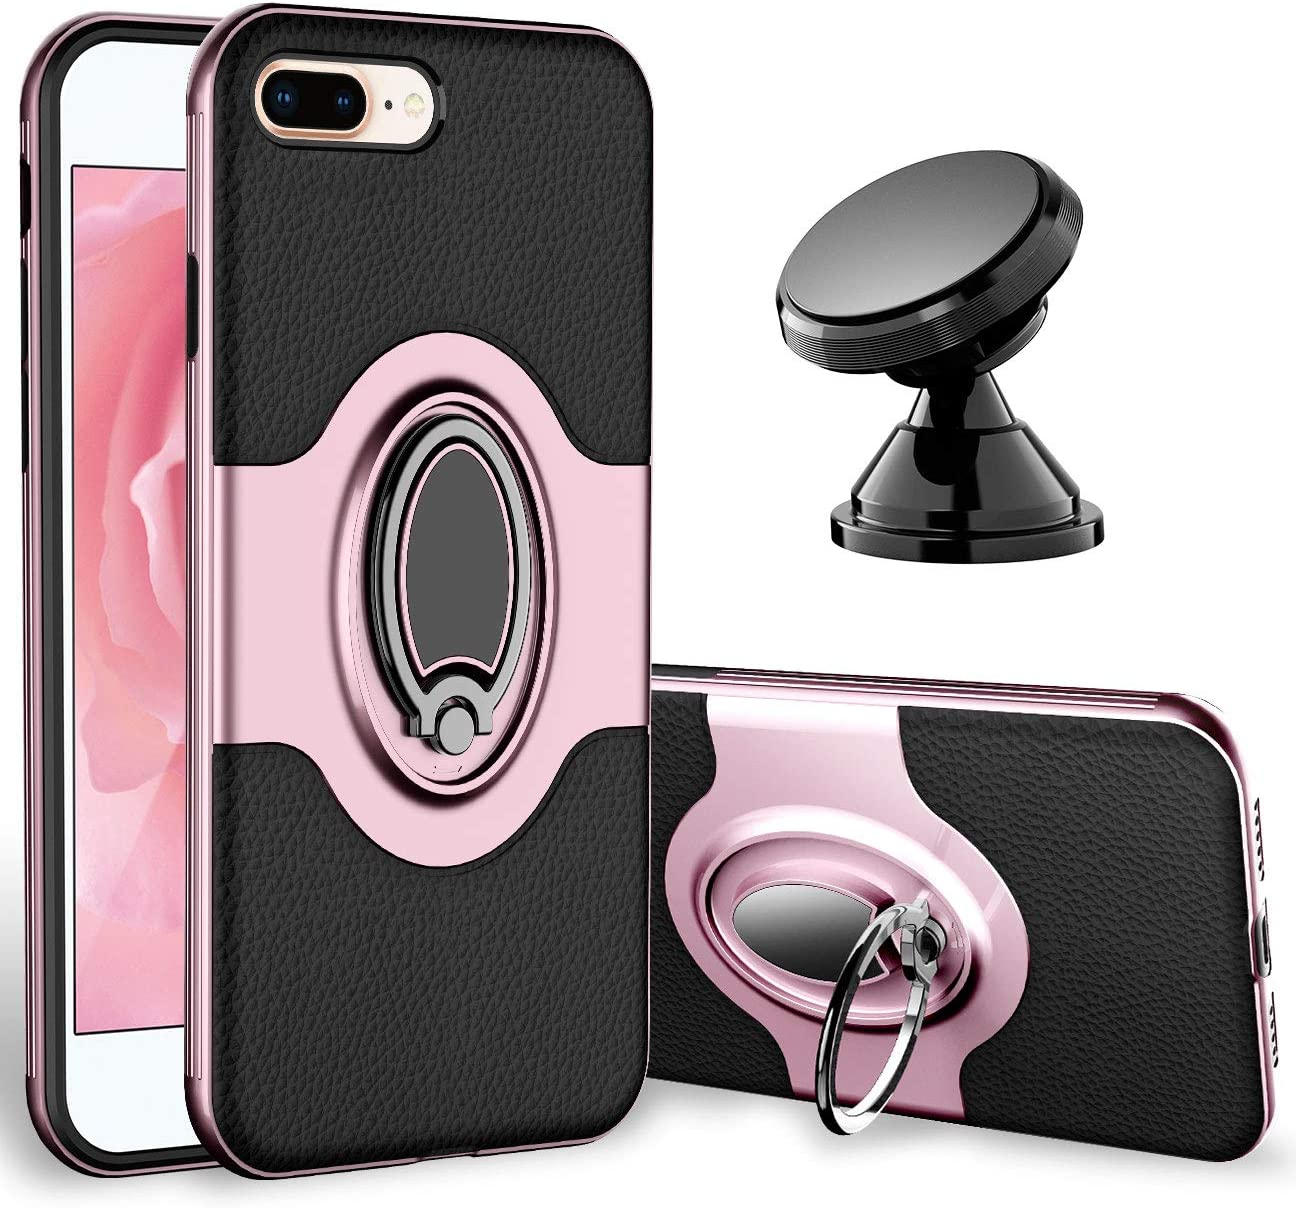 eSamcore iPhone 7 Plus Case, iPhone 8 Plus Case Ring Holder Kickstand Cases + Dashboard Magnetic Phone Car Mount for iPhone 7/8 Plus [Rose Gold]